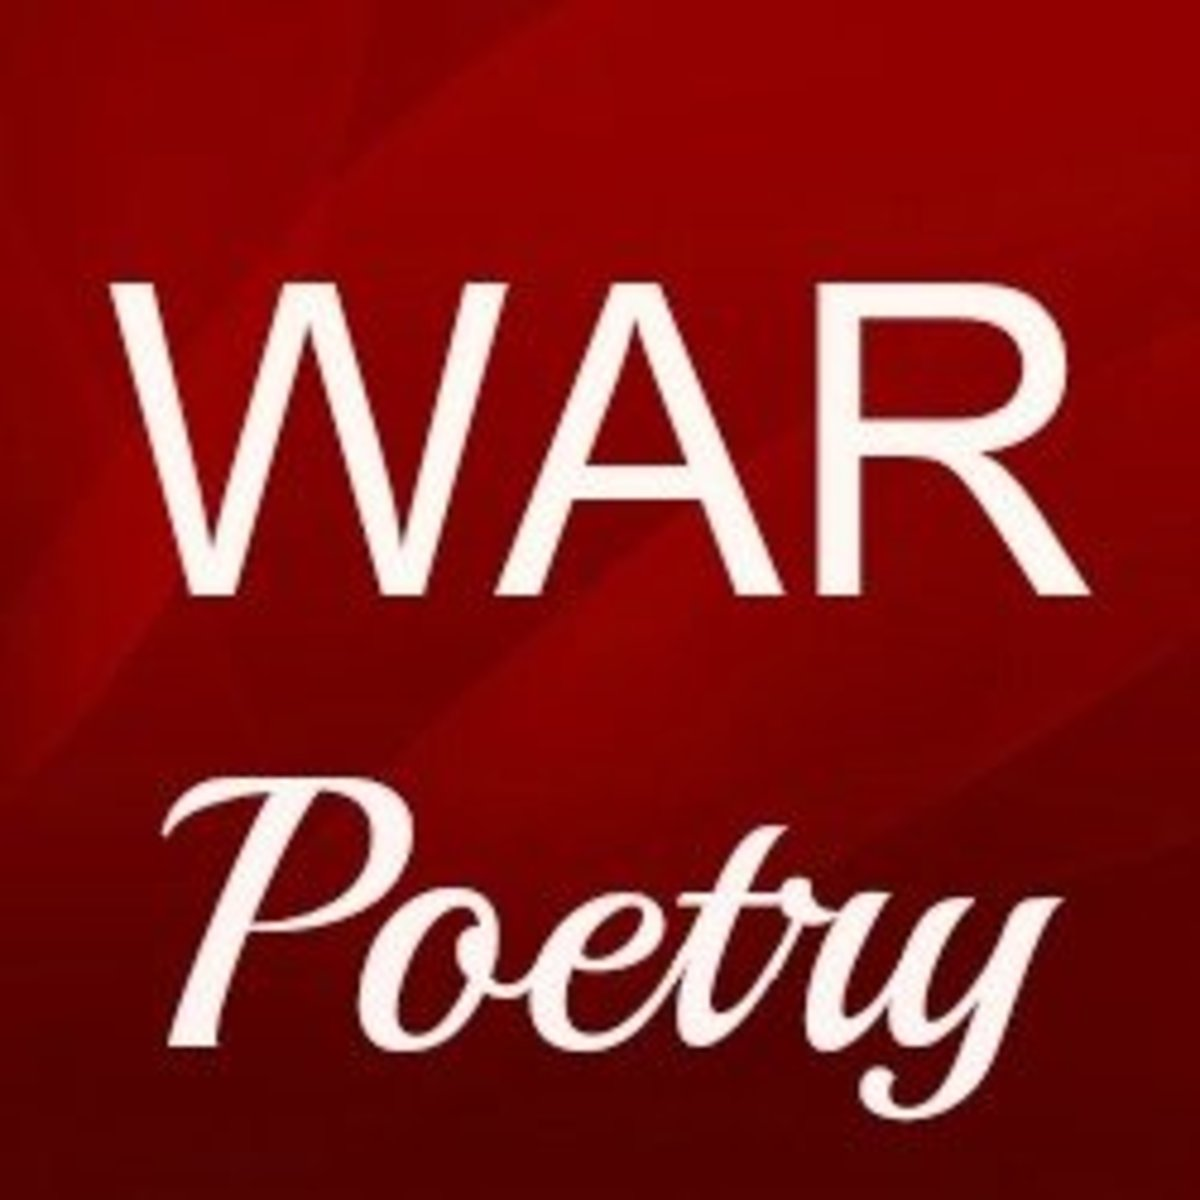 WAR POETRY | 50 Poems about War | Soldier Poems